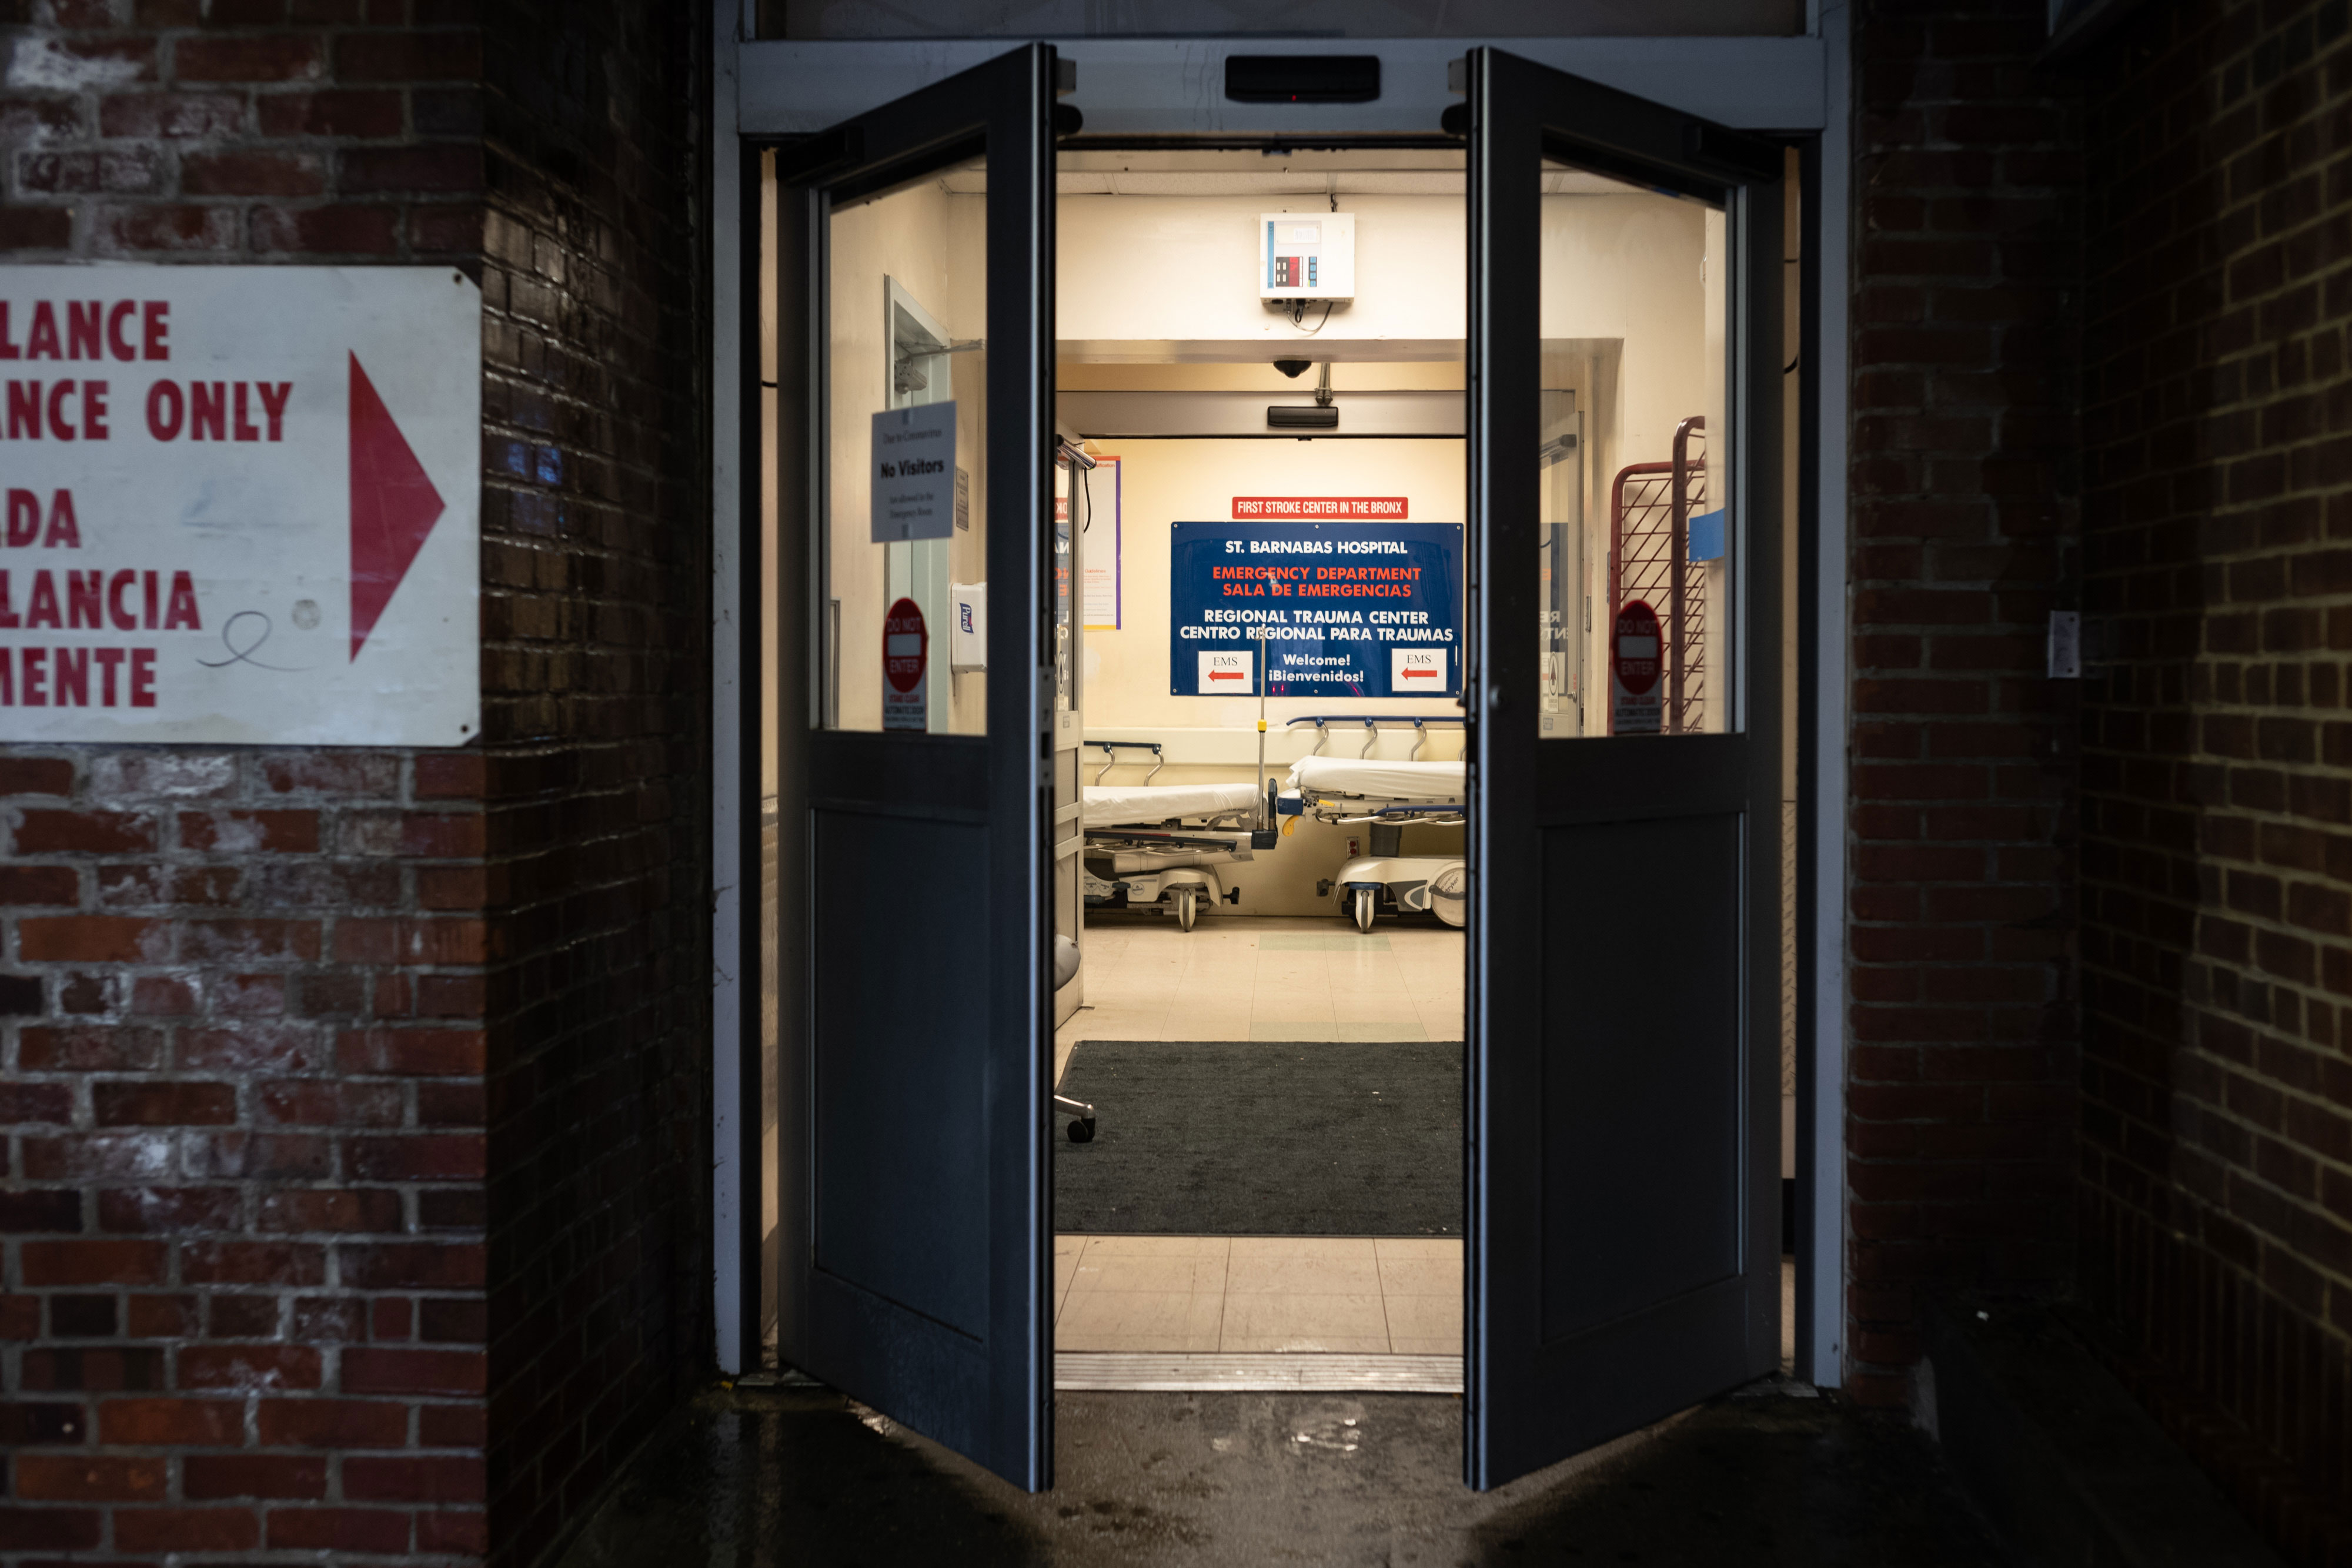 Doors open into the emergency department at St. Barnabas Hospital in New York, on March 23.